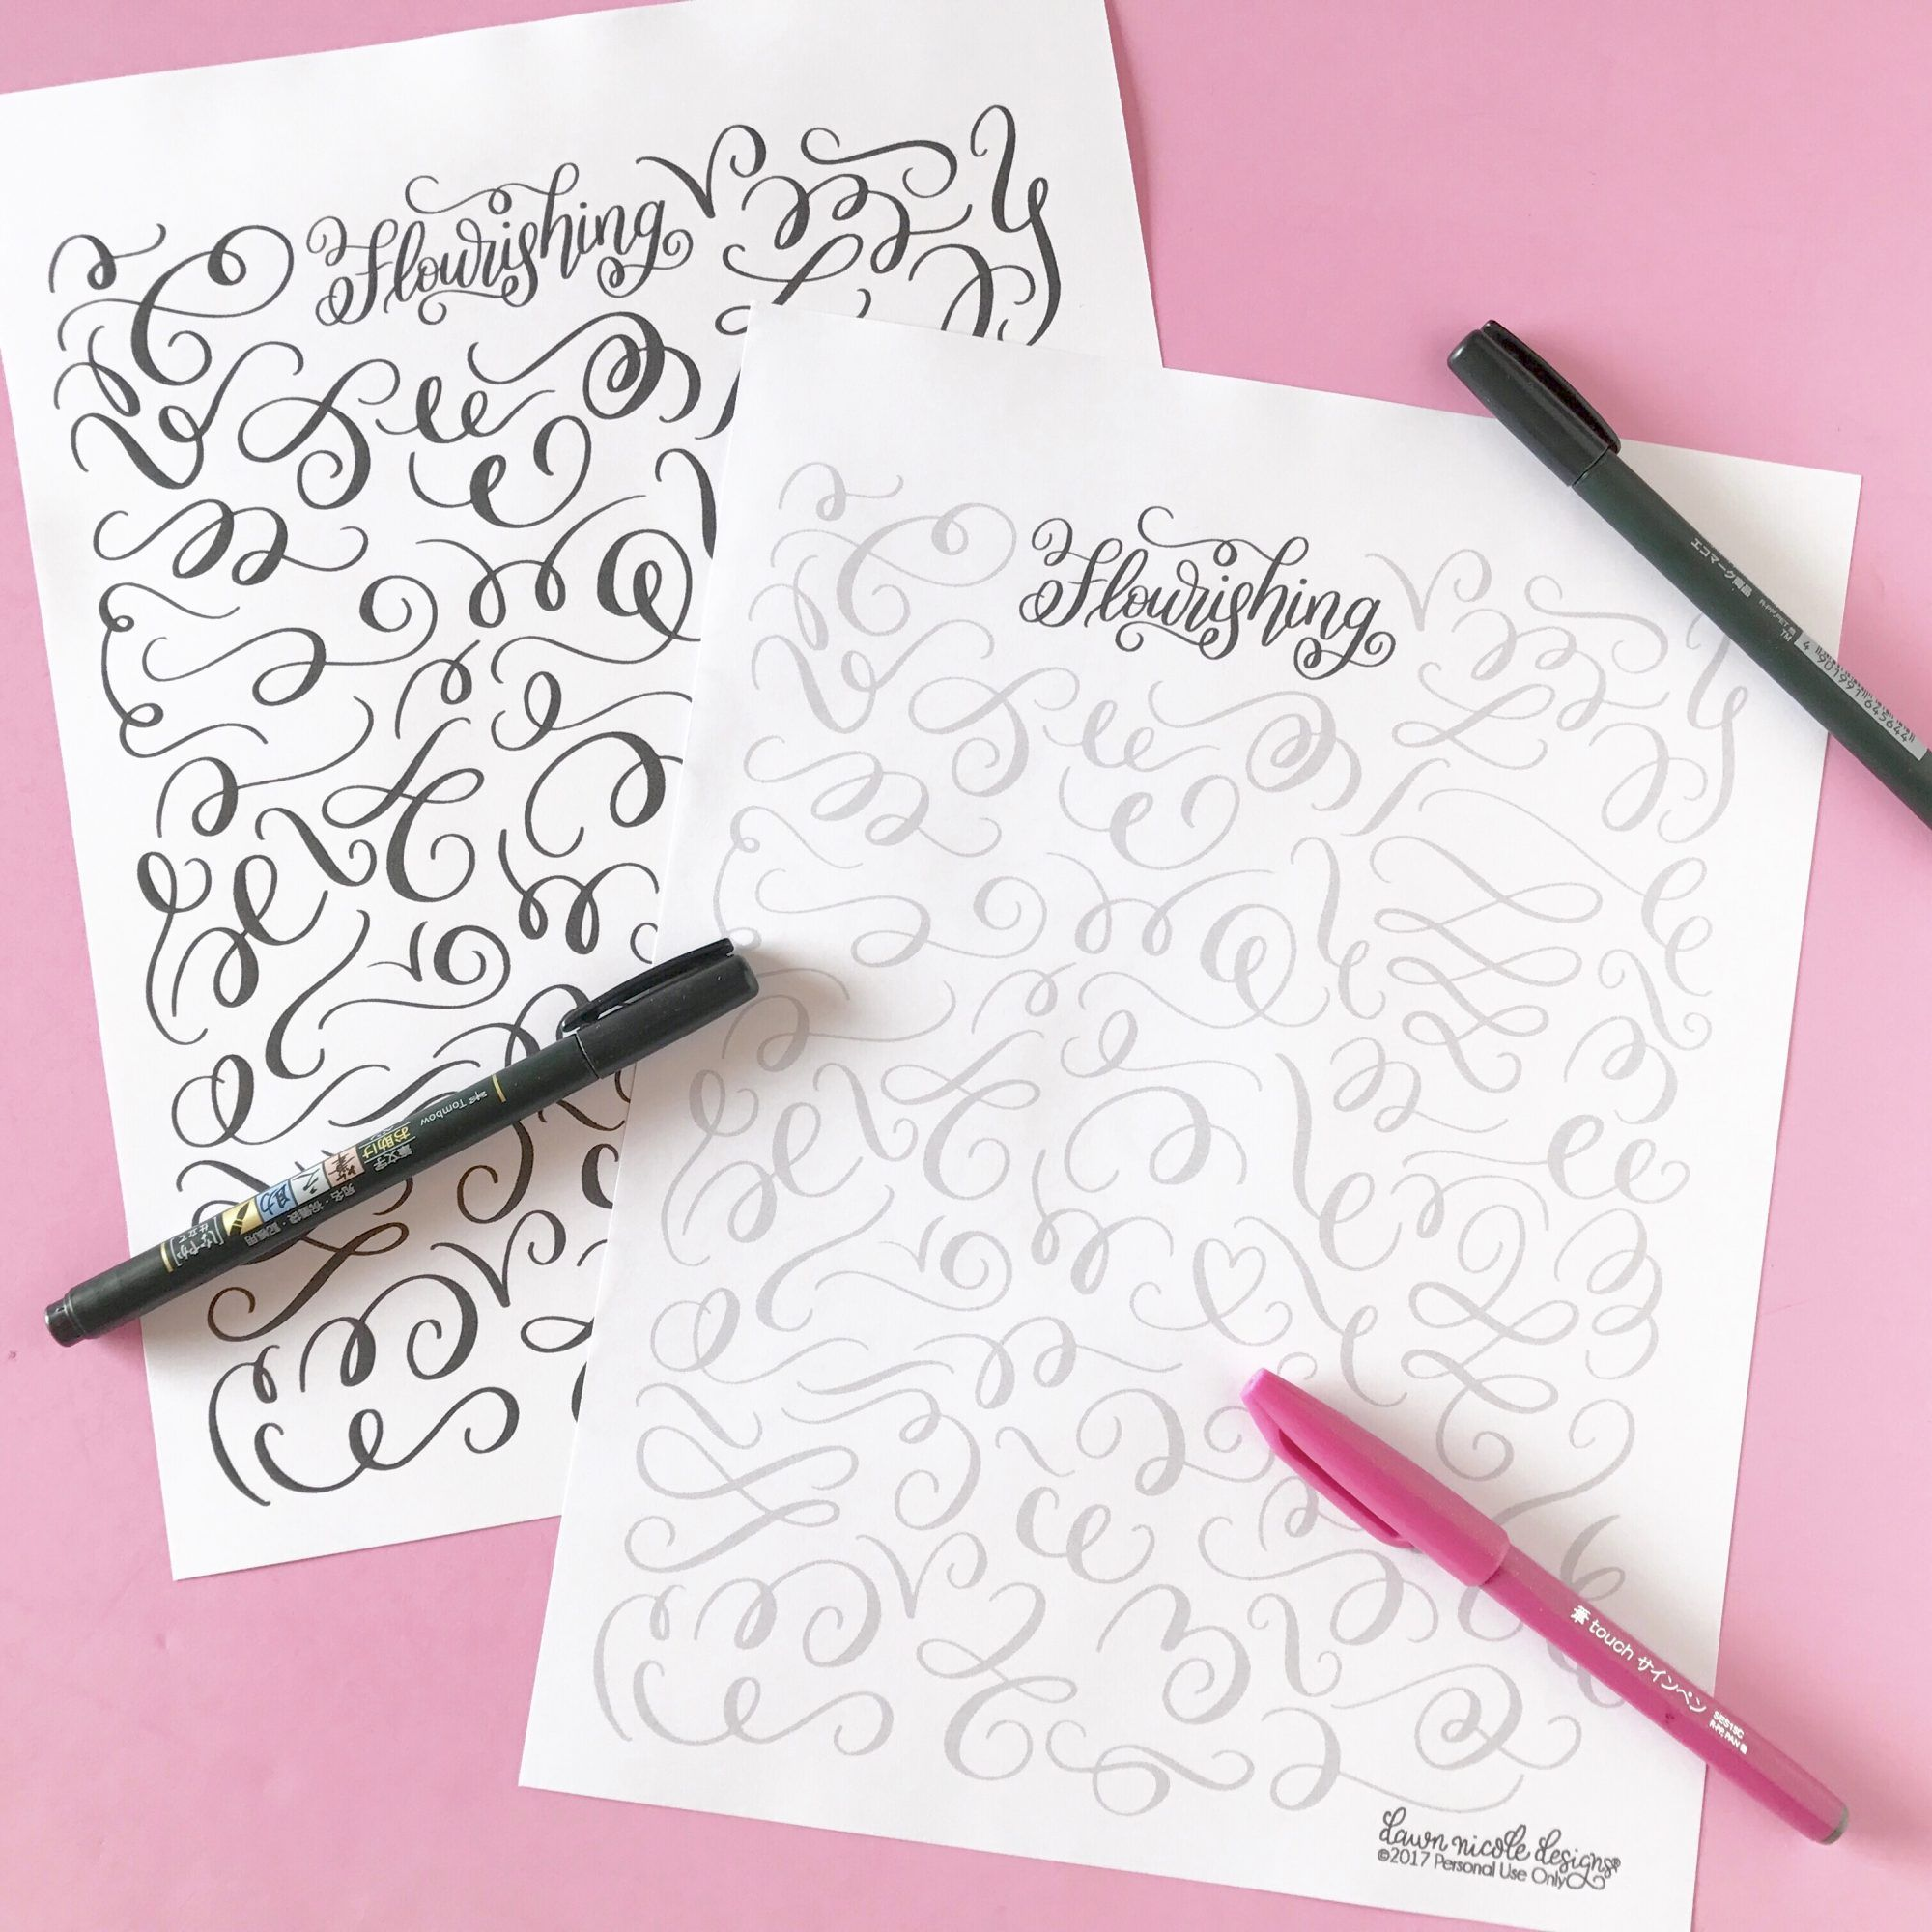 Flourishing Tips And Free Practice Worksheet Set